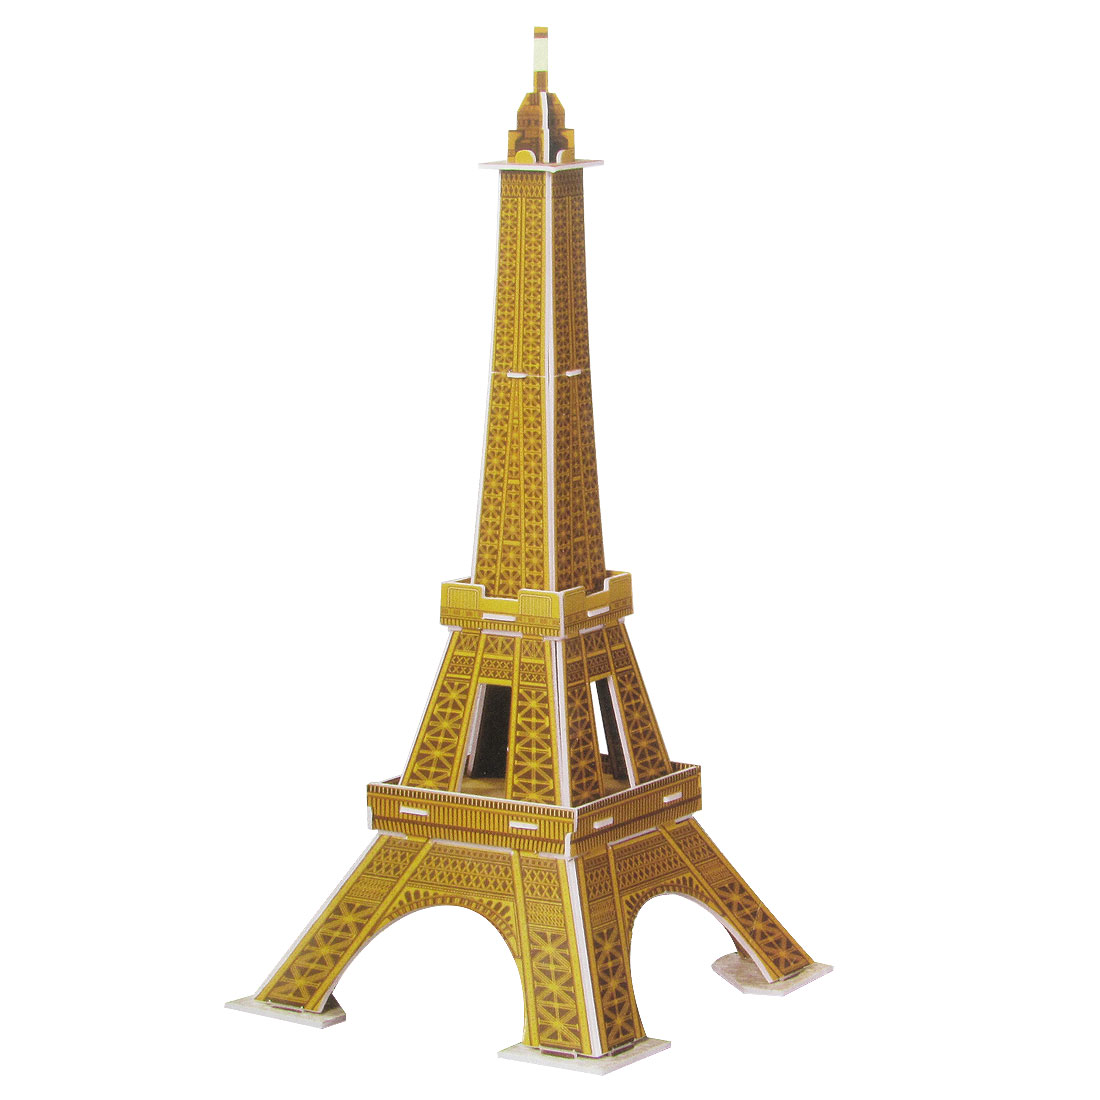 Mini Size World's Architecture Eiffel Tower 3D Jigsaw Puzzle Toy